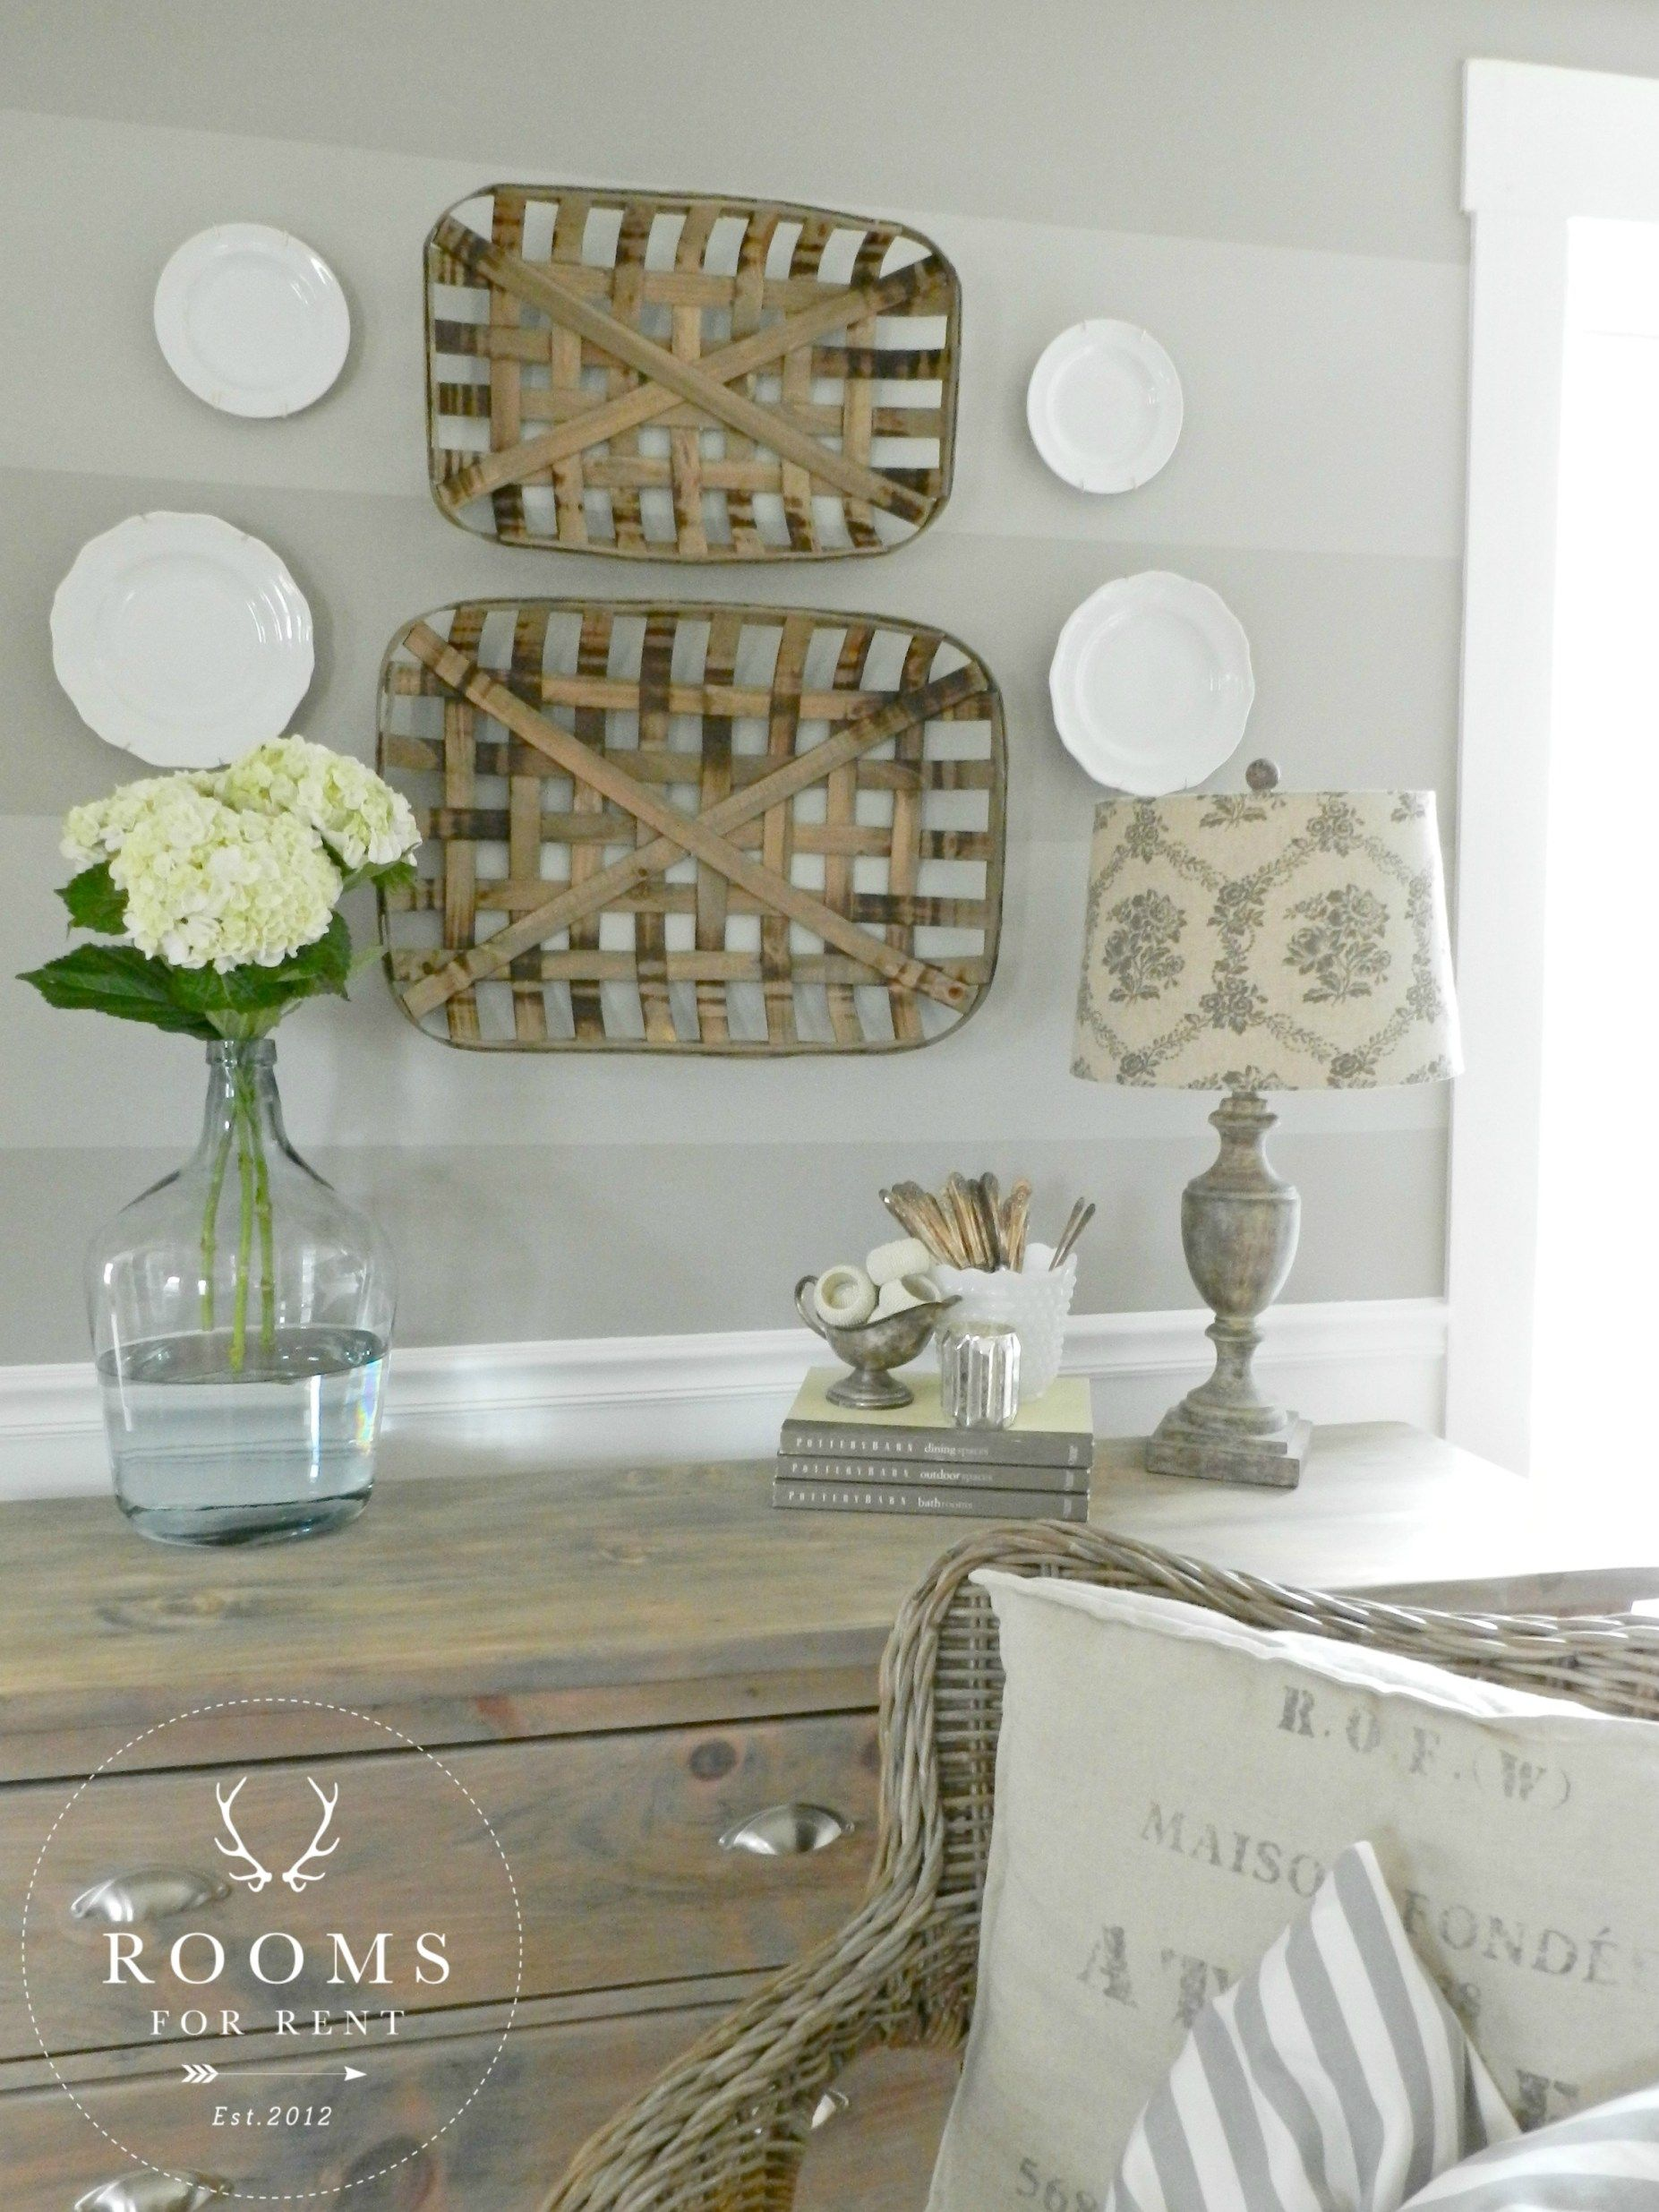 Wall Baskets Decor tobacco baskets wall decor & a giveaway! - rooms for rent blog